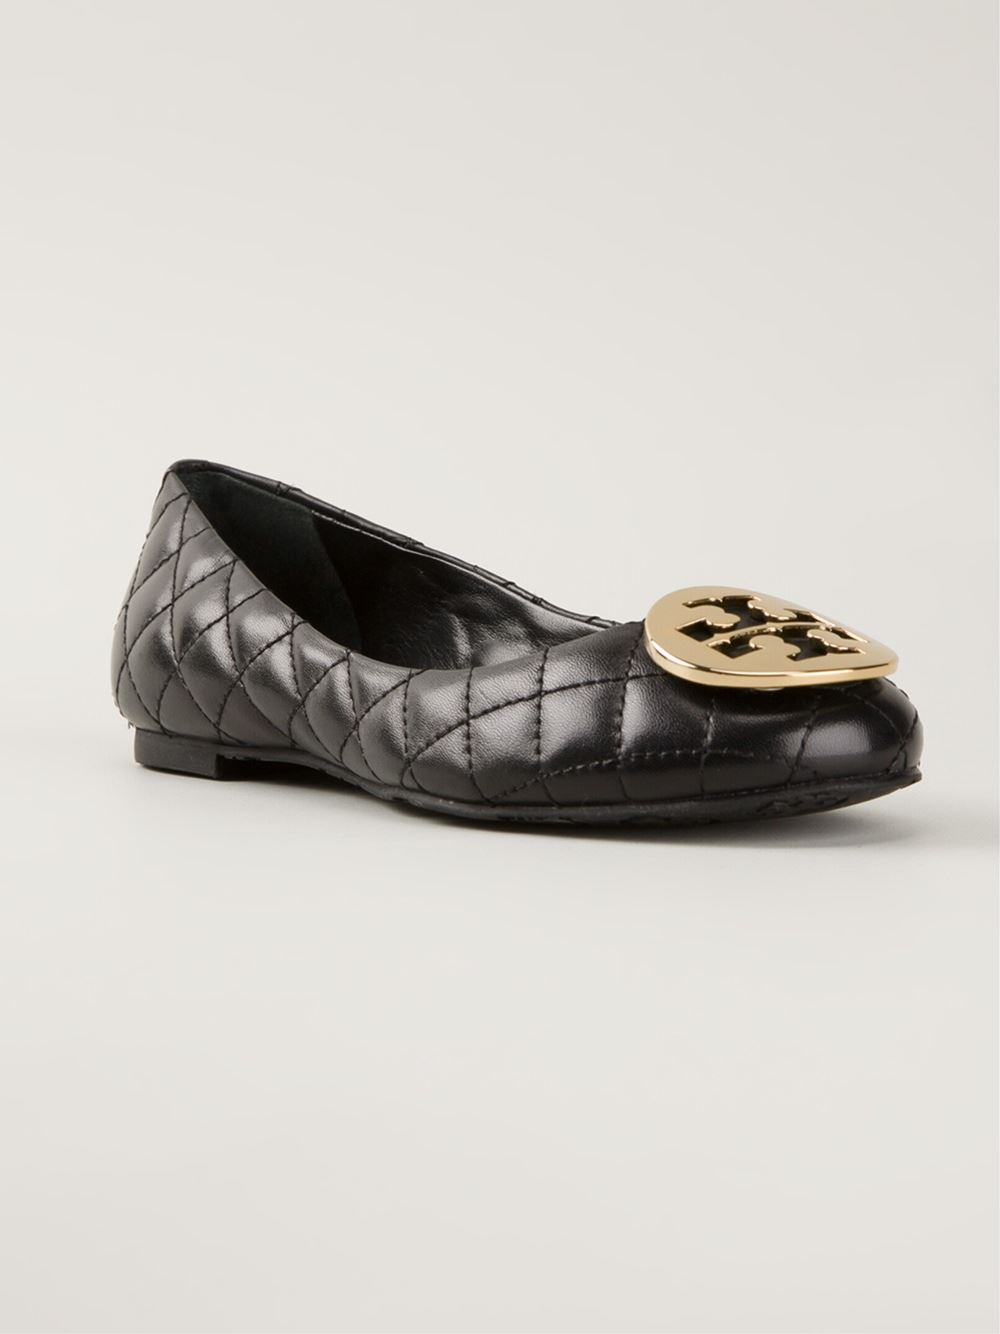 tory burch 39 reva 39 quilted ballerinas in black lyst. Black Bedroom Furniture Sets. Home Design Ideas